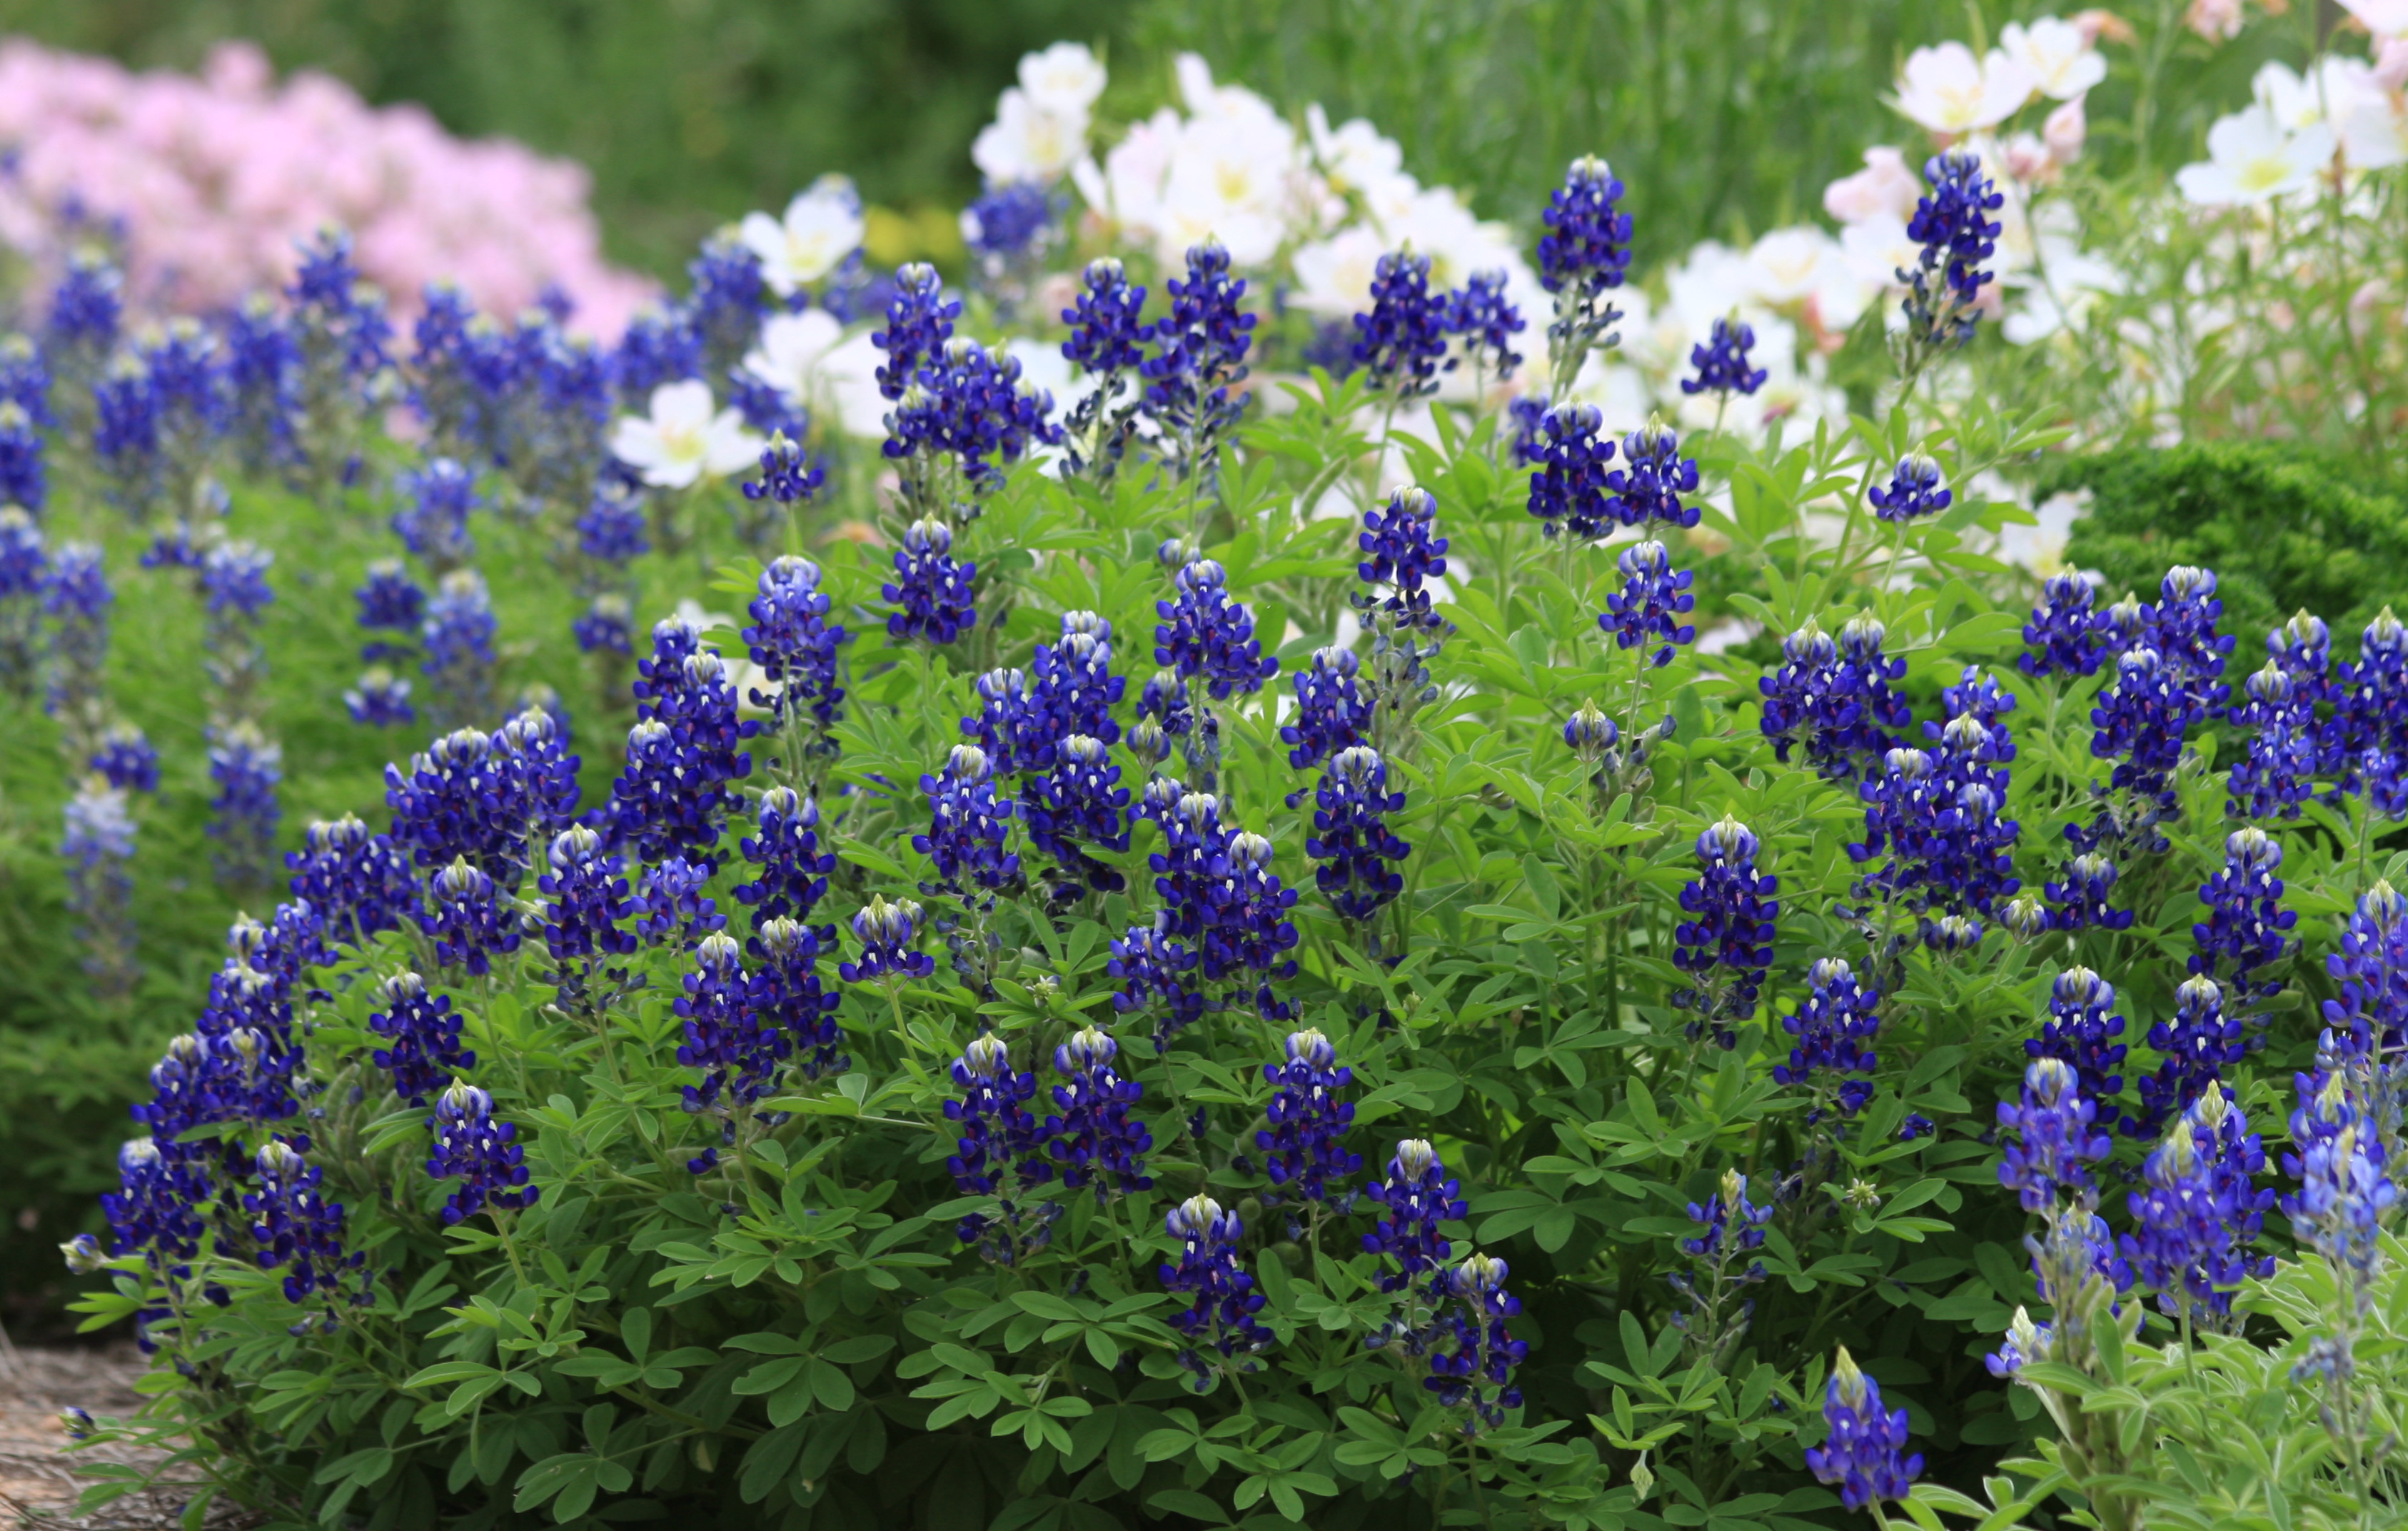 Res: 3373x2144, Texas A&M AgriLife horticulturists have described the deep blue color of  Lady Bird Johnson Royal Blue